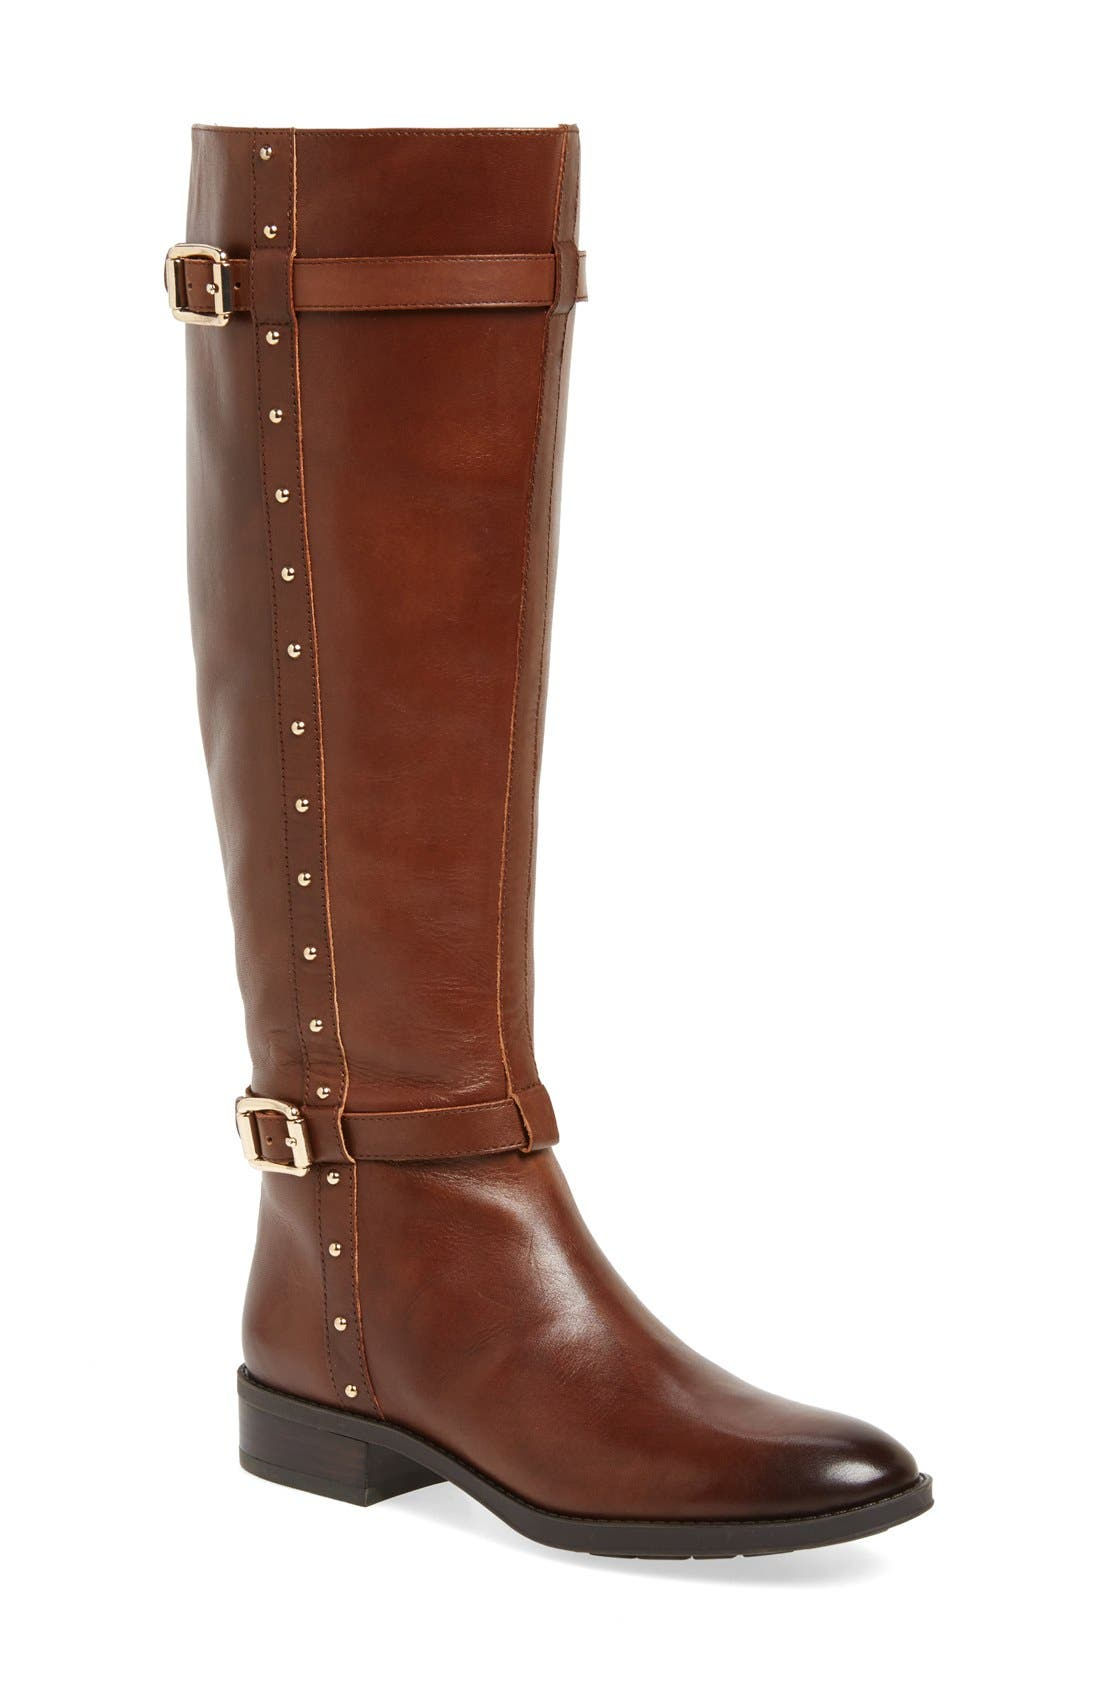 Alternate Image 1 Selected - Vince Camuto 'Preslen' Riding Boot (Women) (Wide Calf)